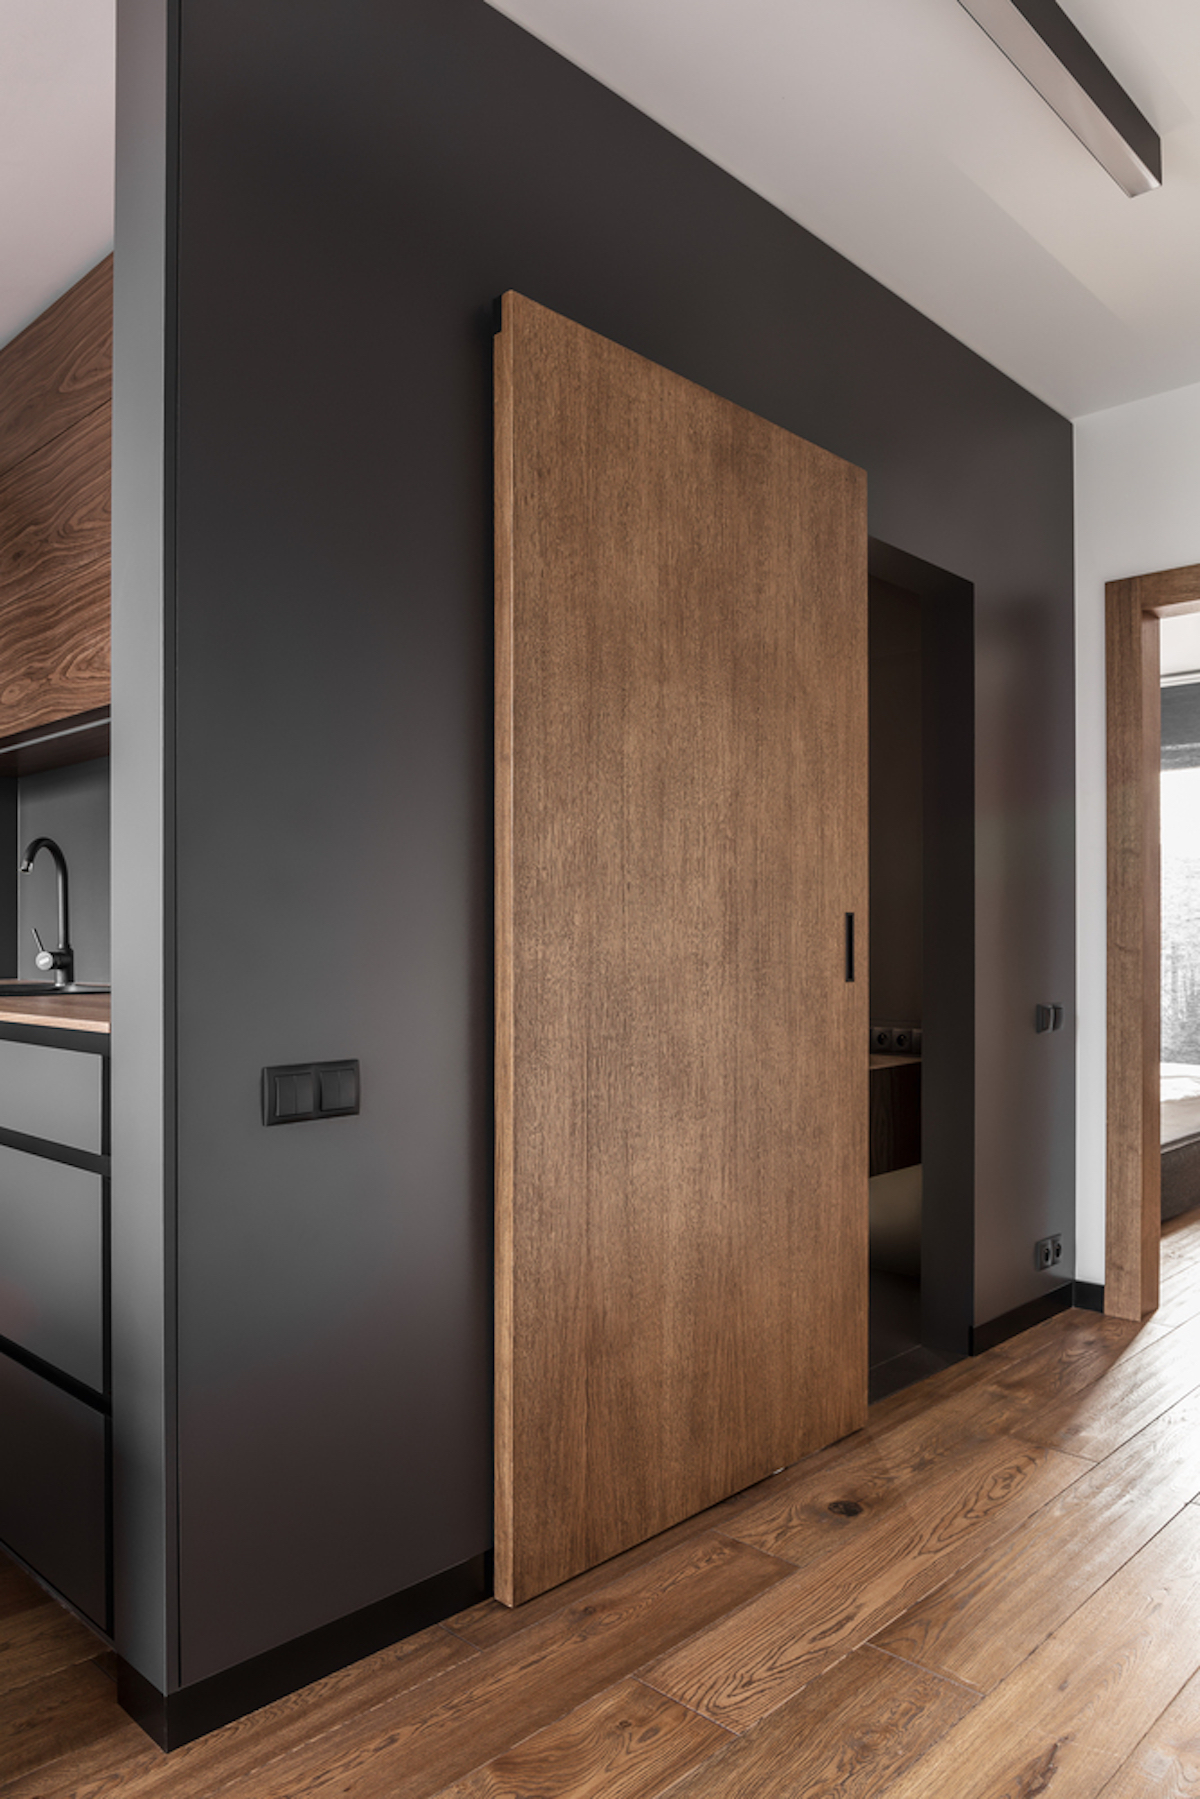 The large wooden door matches the floor and ensures cohesiveness throughout the apartment